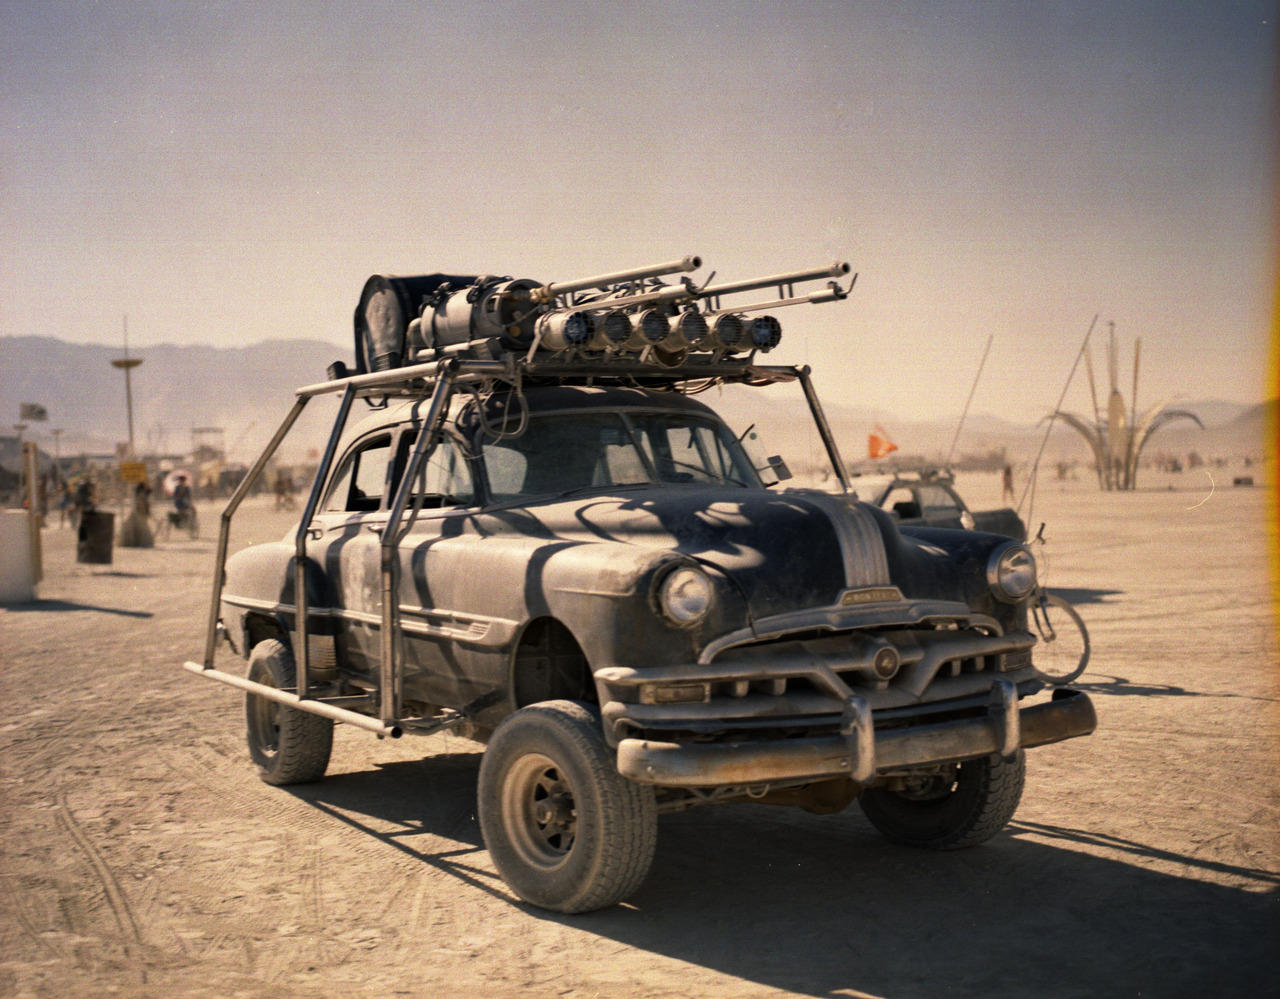 mad max 4 fury road 2015 possible vehicle by maltian on deviantart. Black Bedroom Furniture Sets. Home Design Ideas